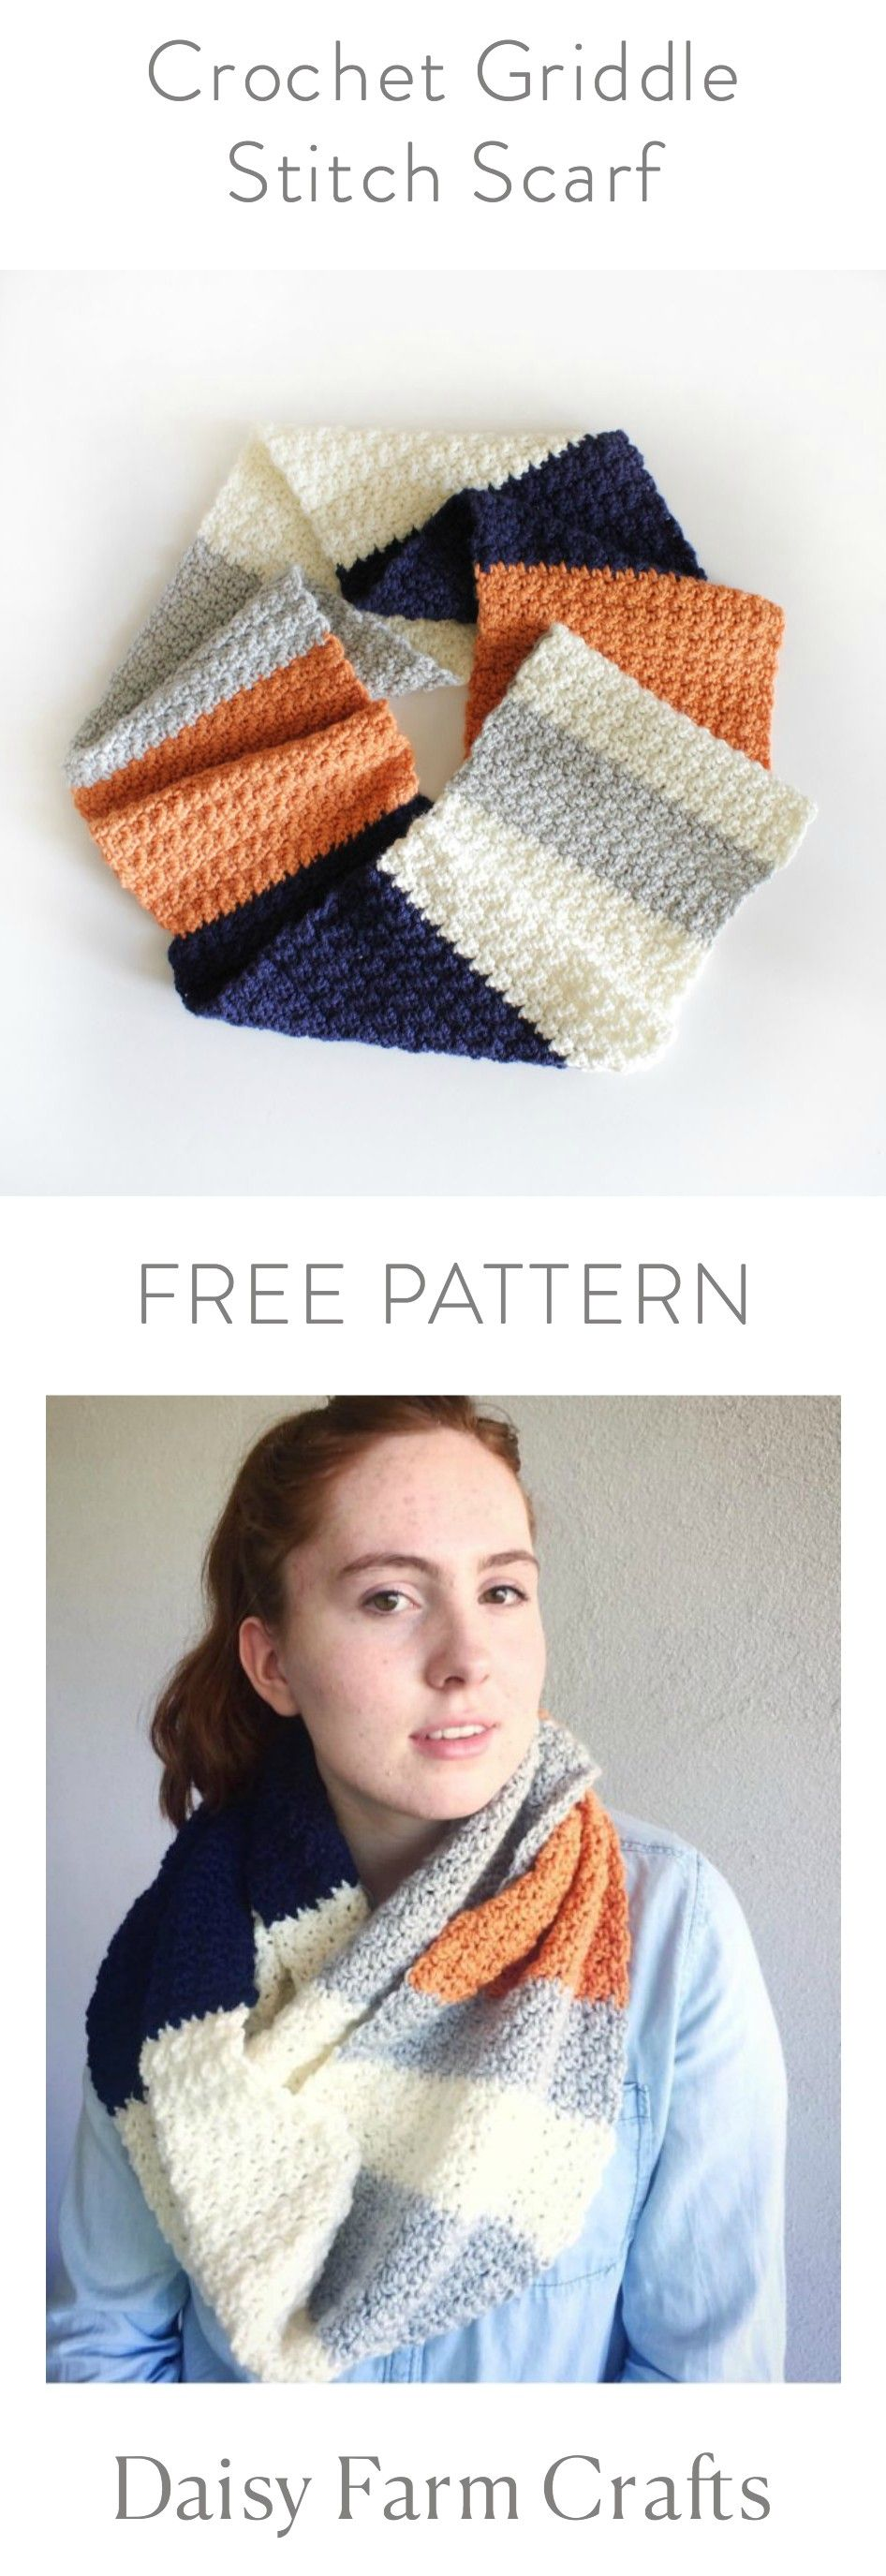 FREE PATTERN - Crochet Griddle Stitch Scarf | Crochet Cowl\'s ...